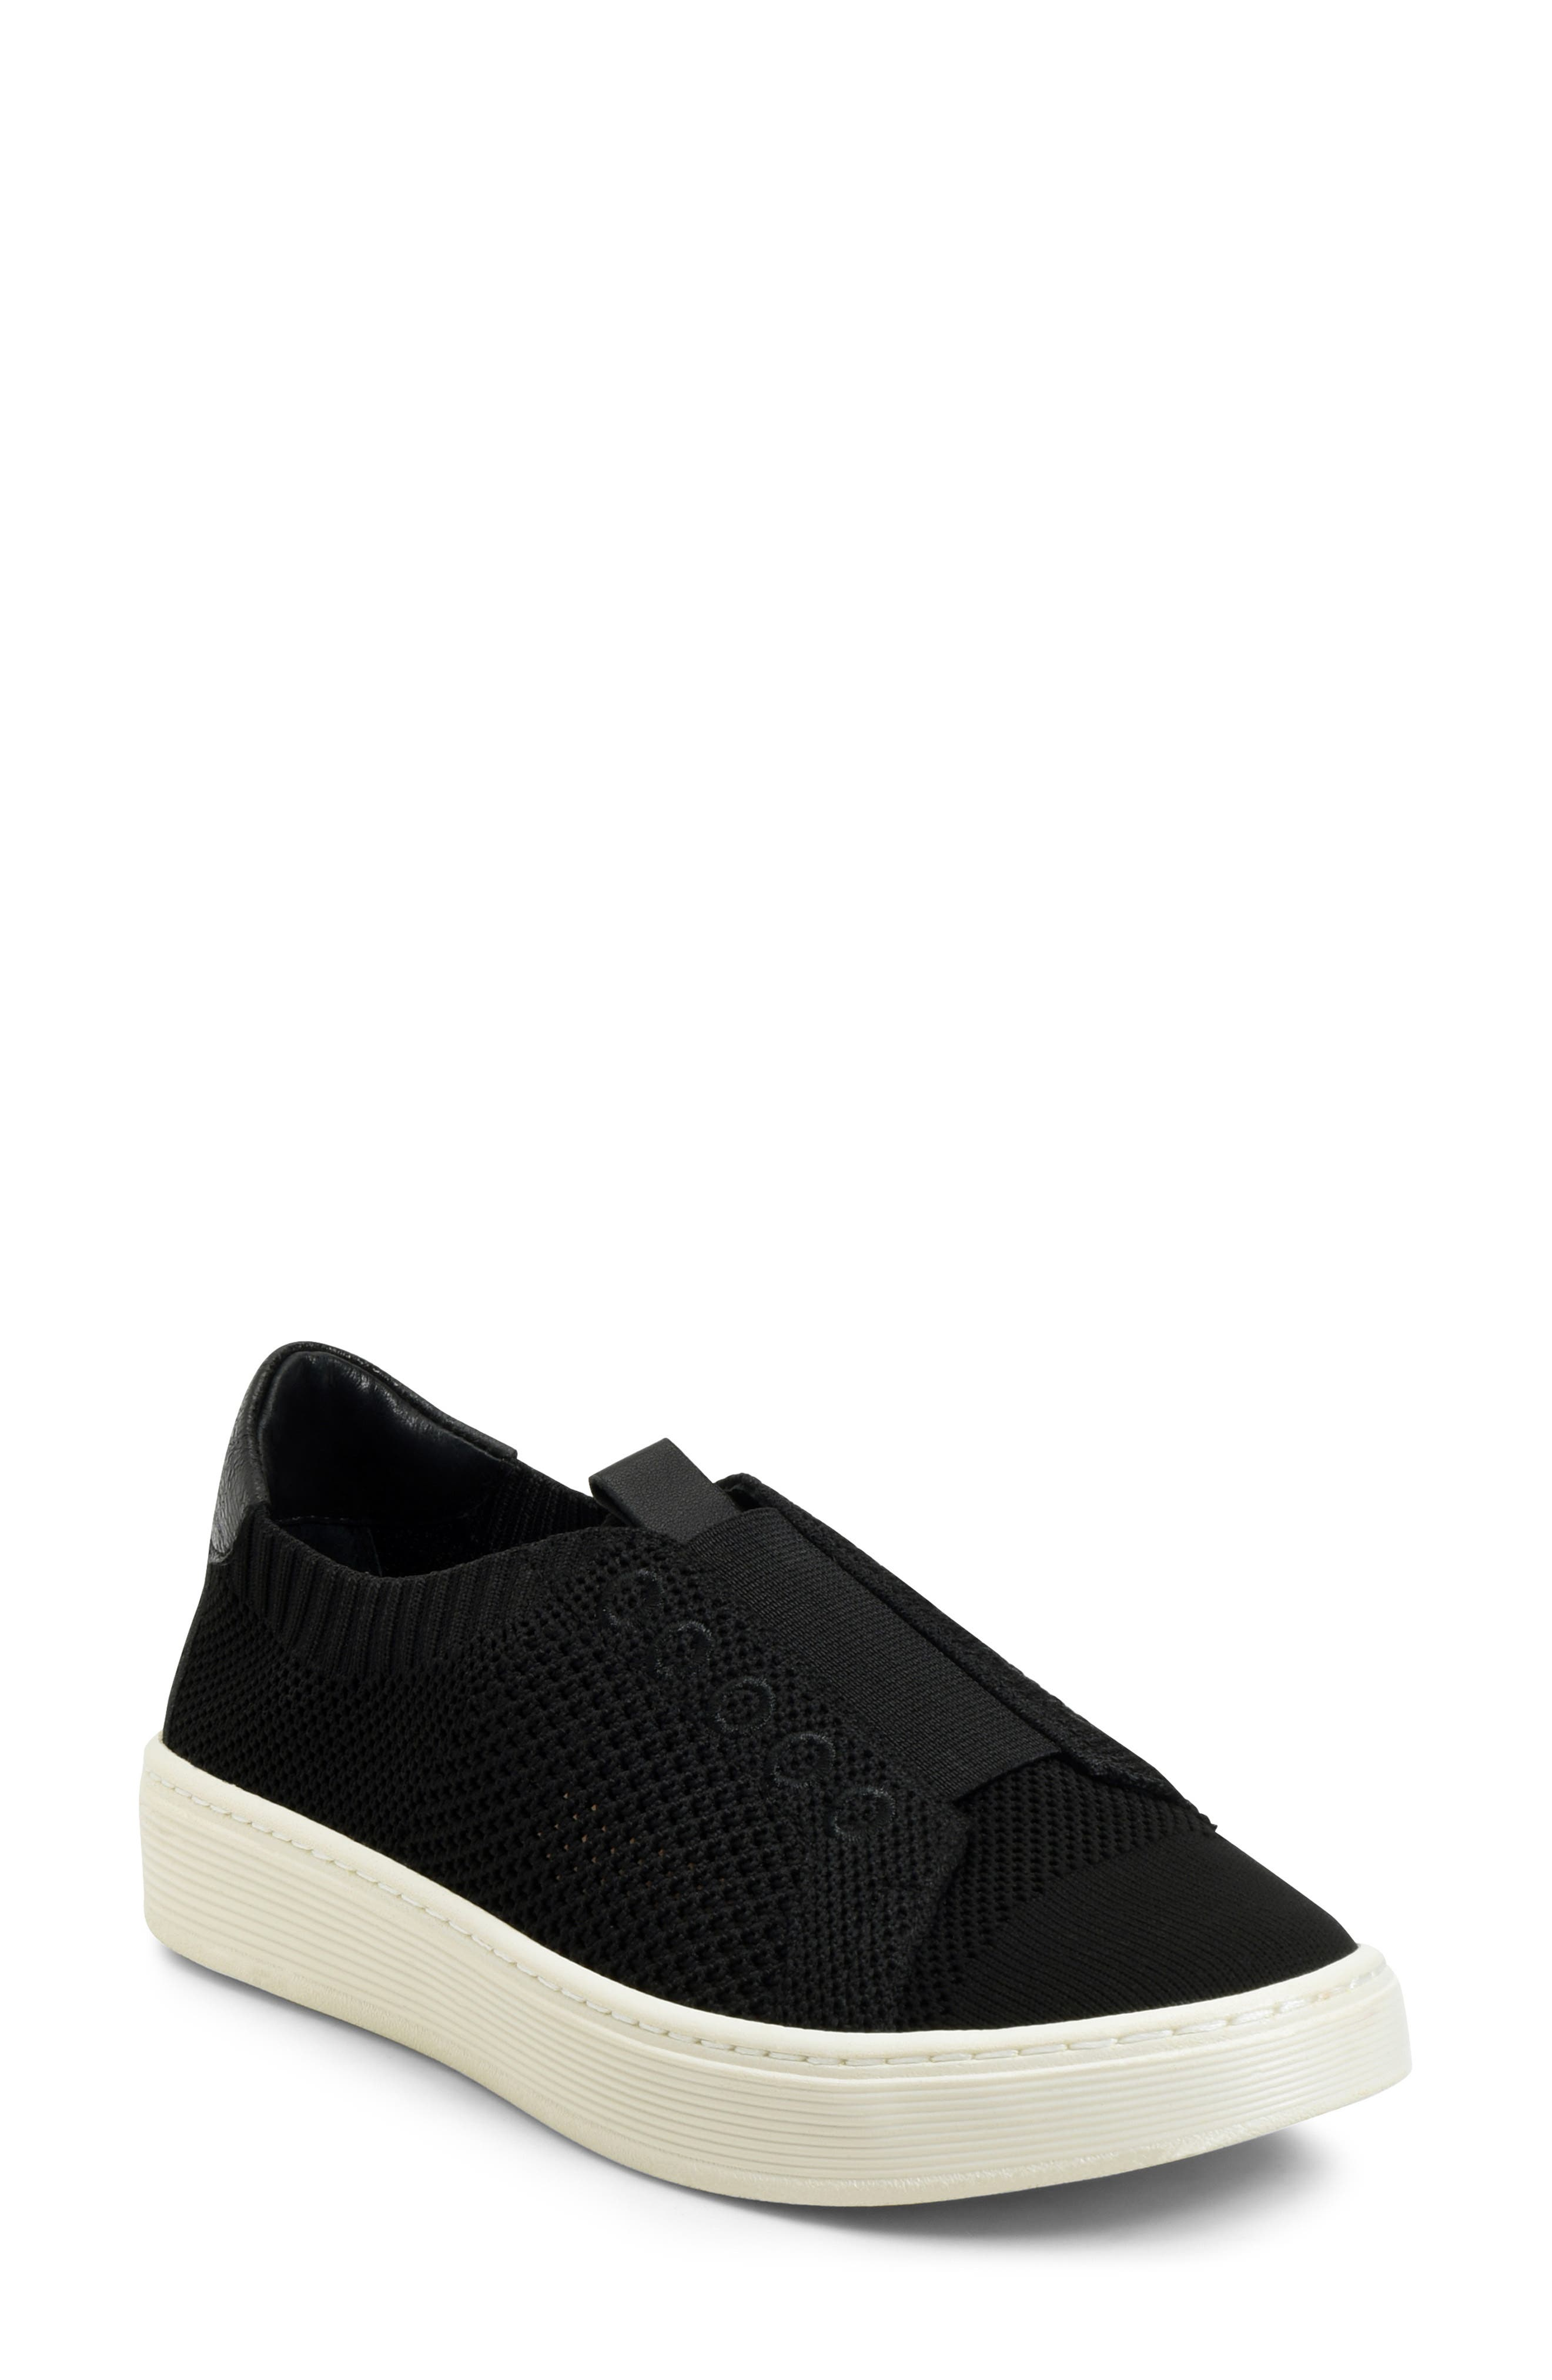 Sofft Safia Knit Slip-On Sneaker- Black